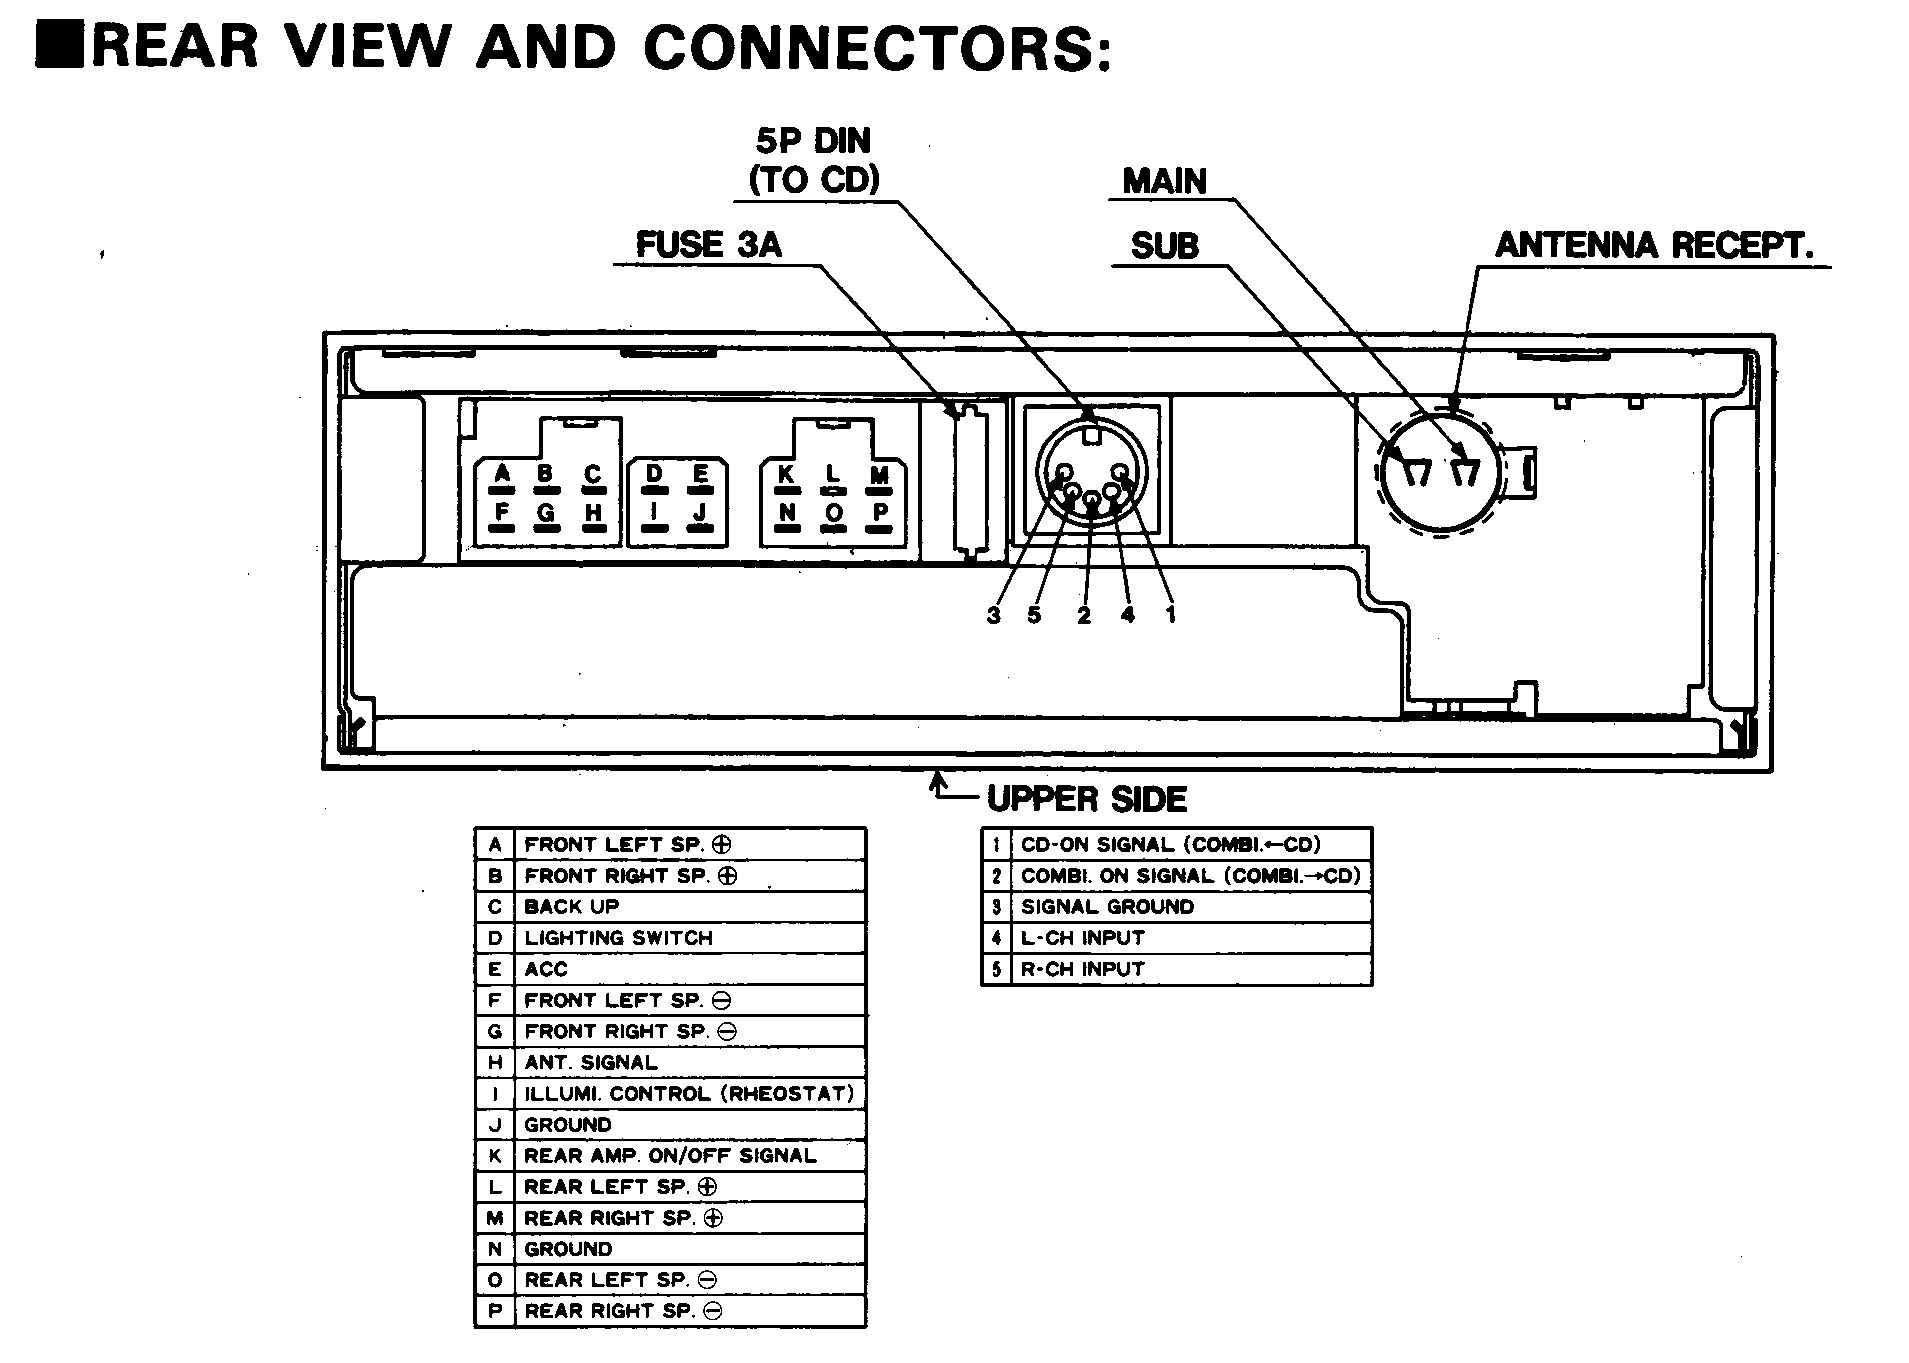 car stereo wiring diagram nissan car audio wire diagram codes nissan / infiniti - factory ...